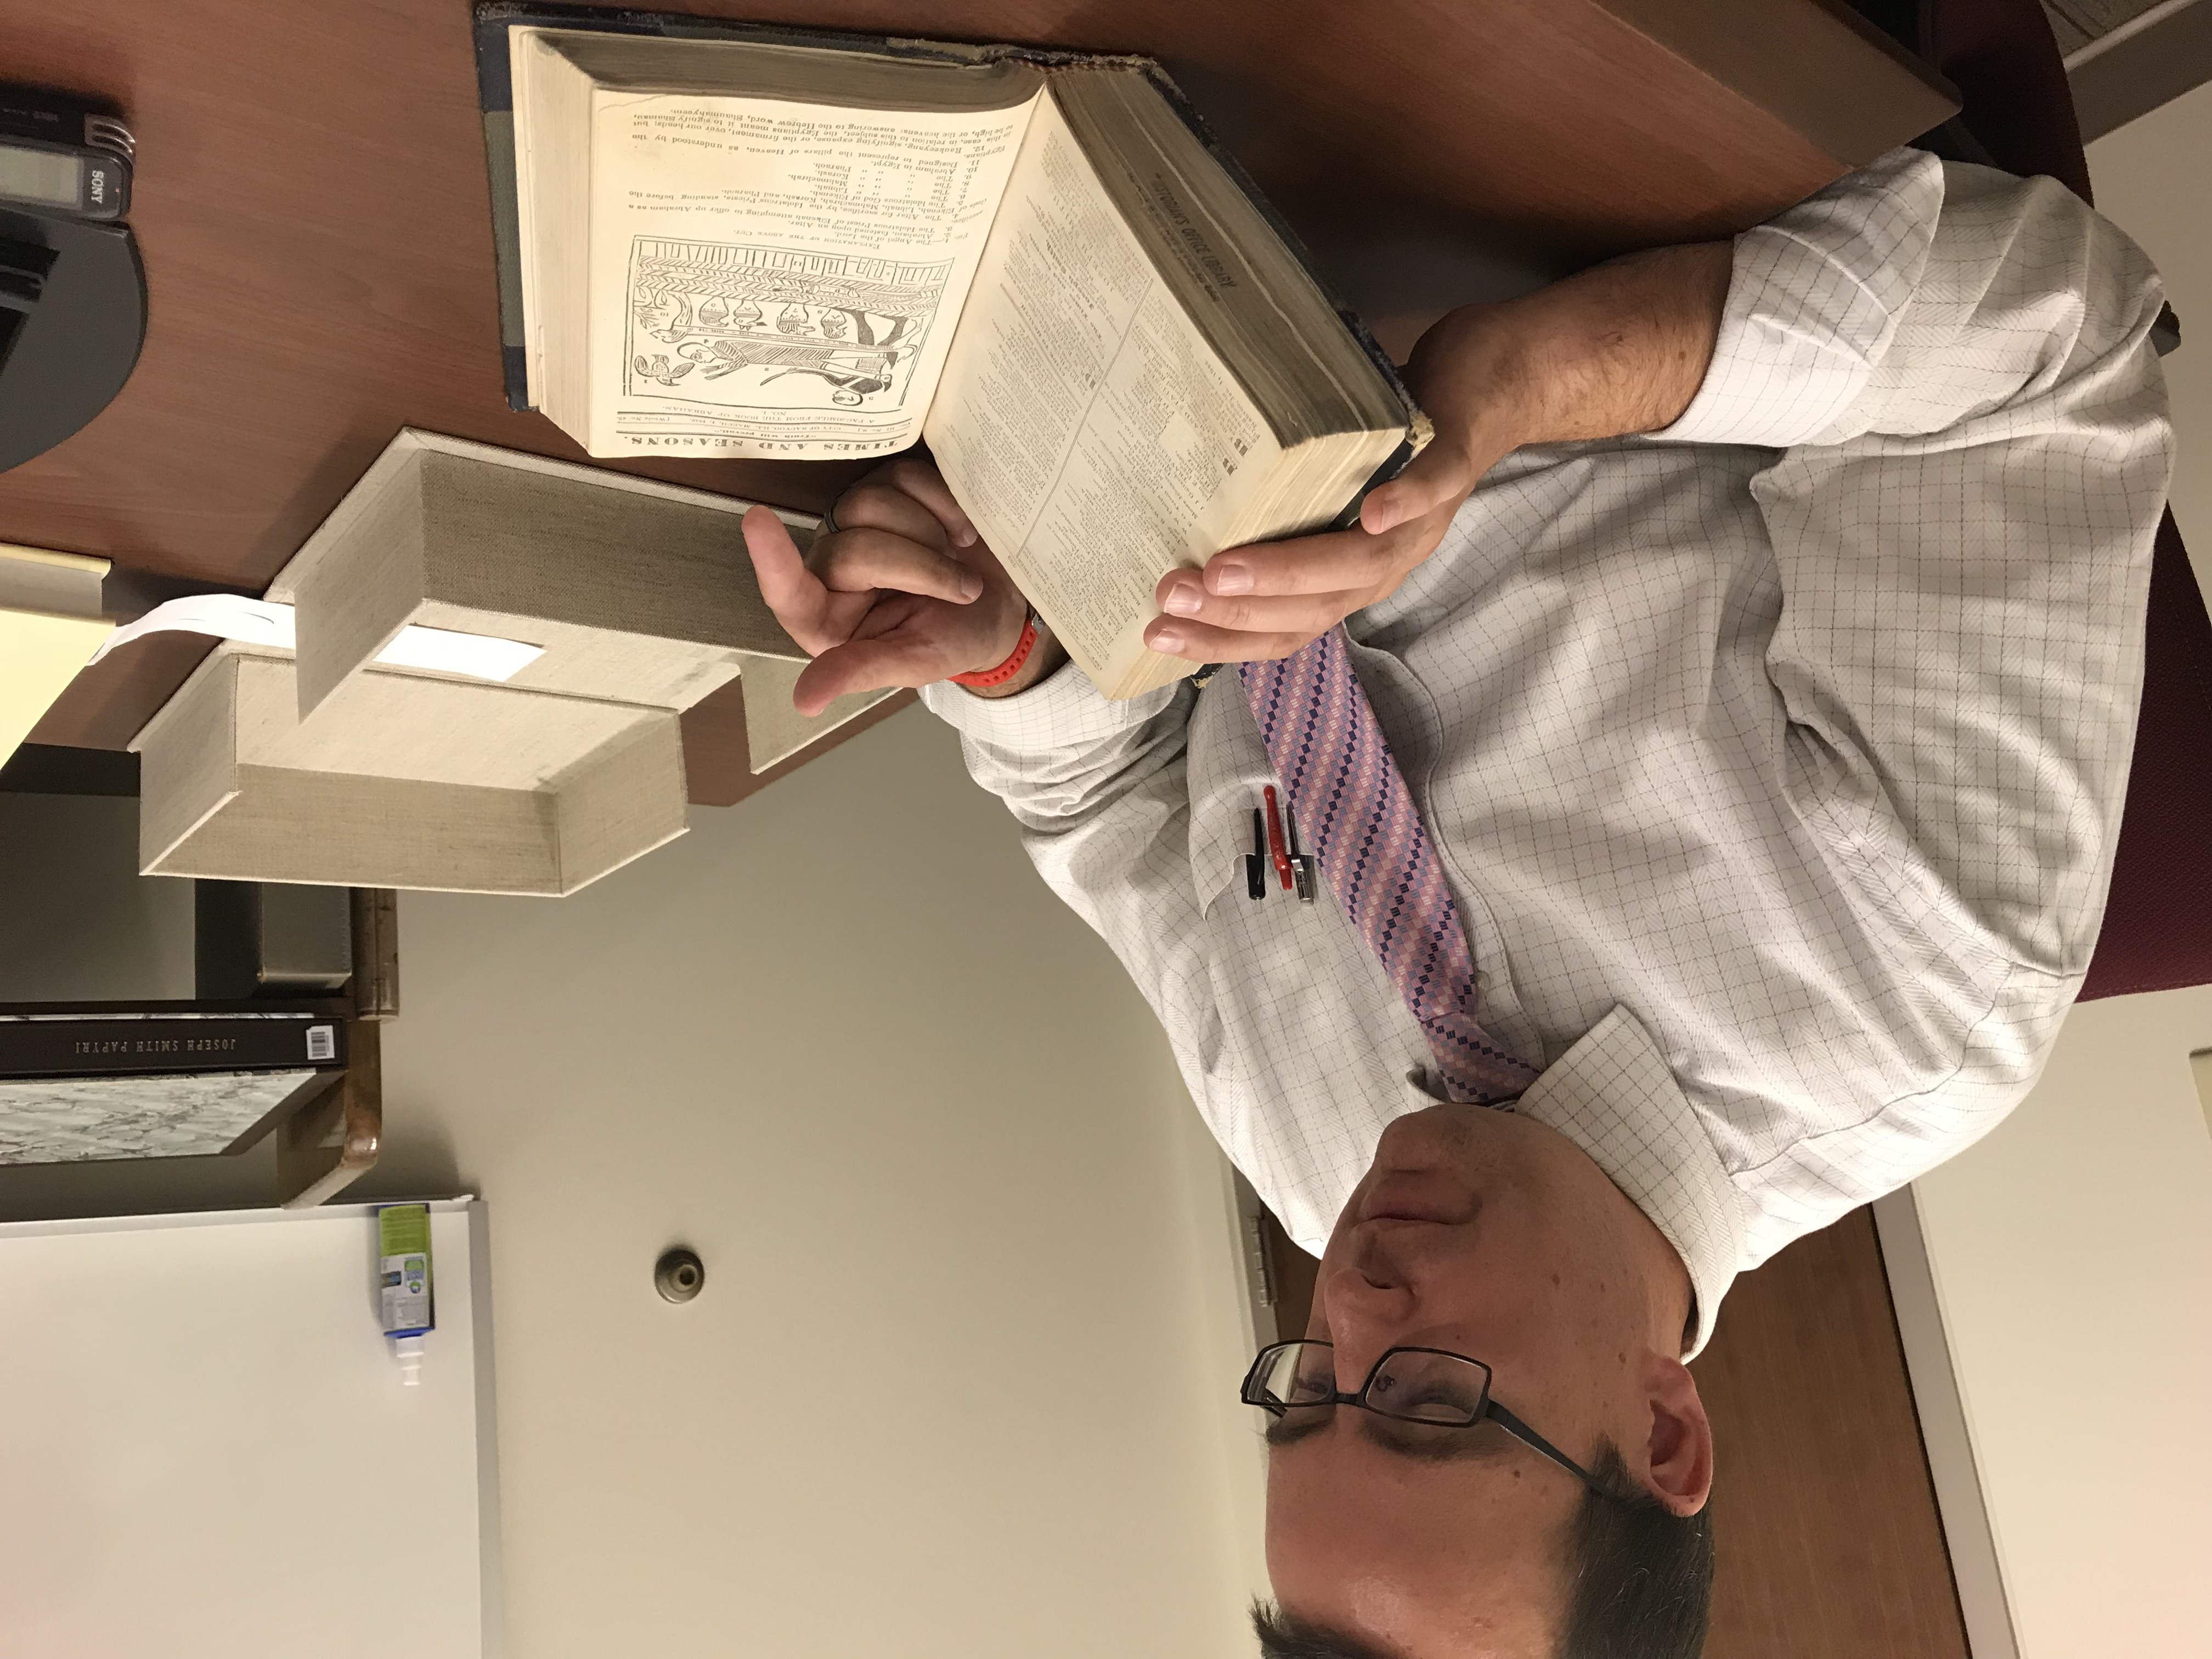 Robin Jensen, a volume editor, shows a copy of the 1842 Times and Seasons with a facsimile from the Book of Abraham.